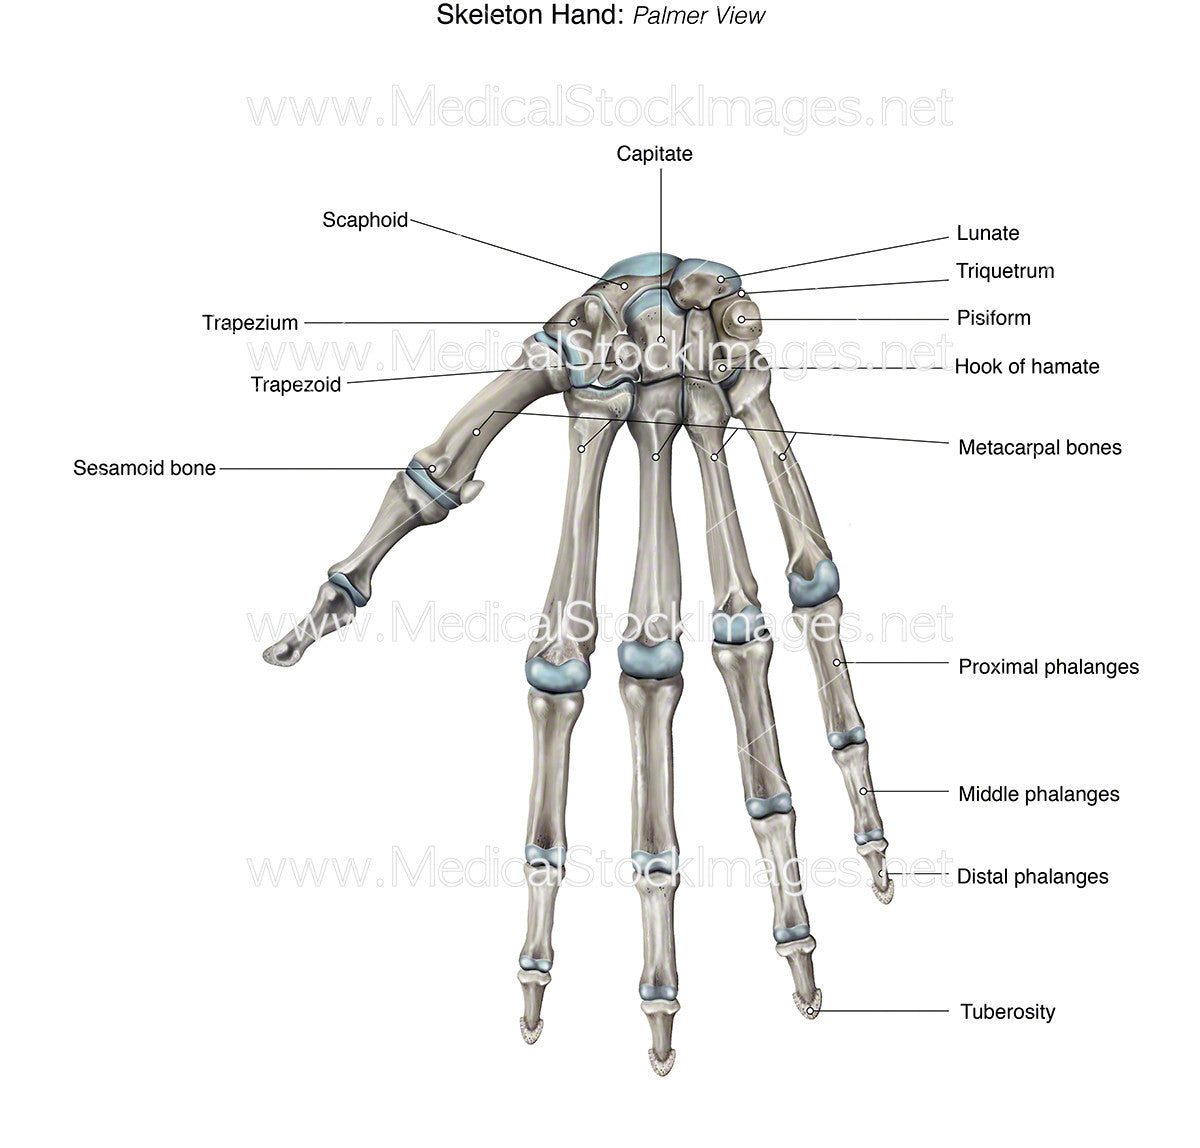 Skeleton Hand – Medical Stock Images Company